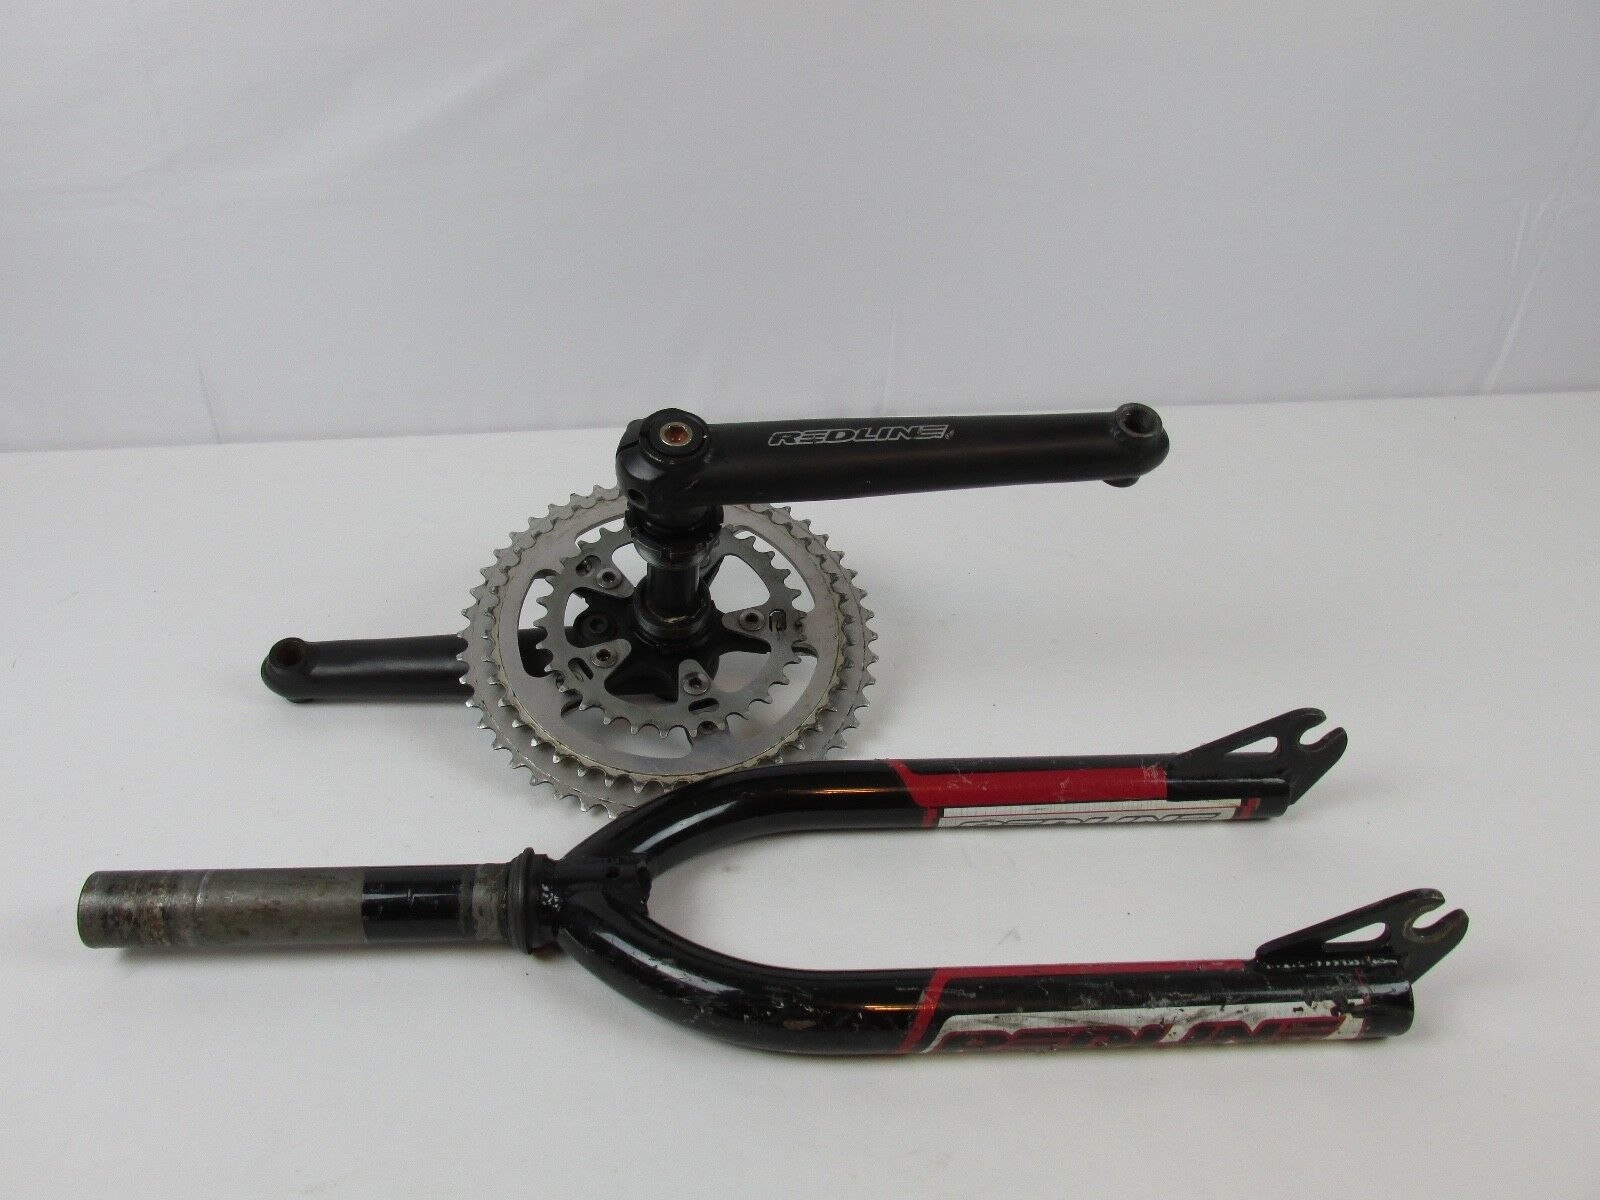 Redline BMX Bike Bicycle Crank Forks  Sugino Redline Crank Old School Parts  will make you satisfied